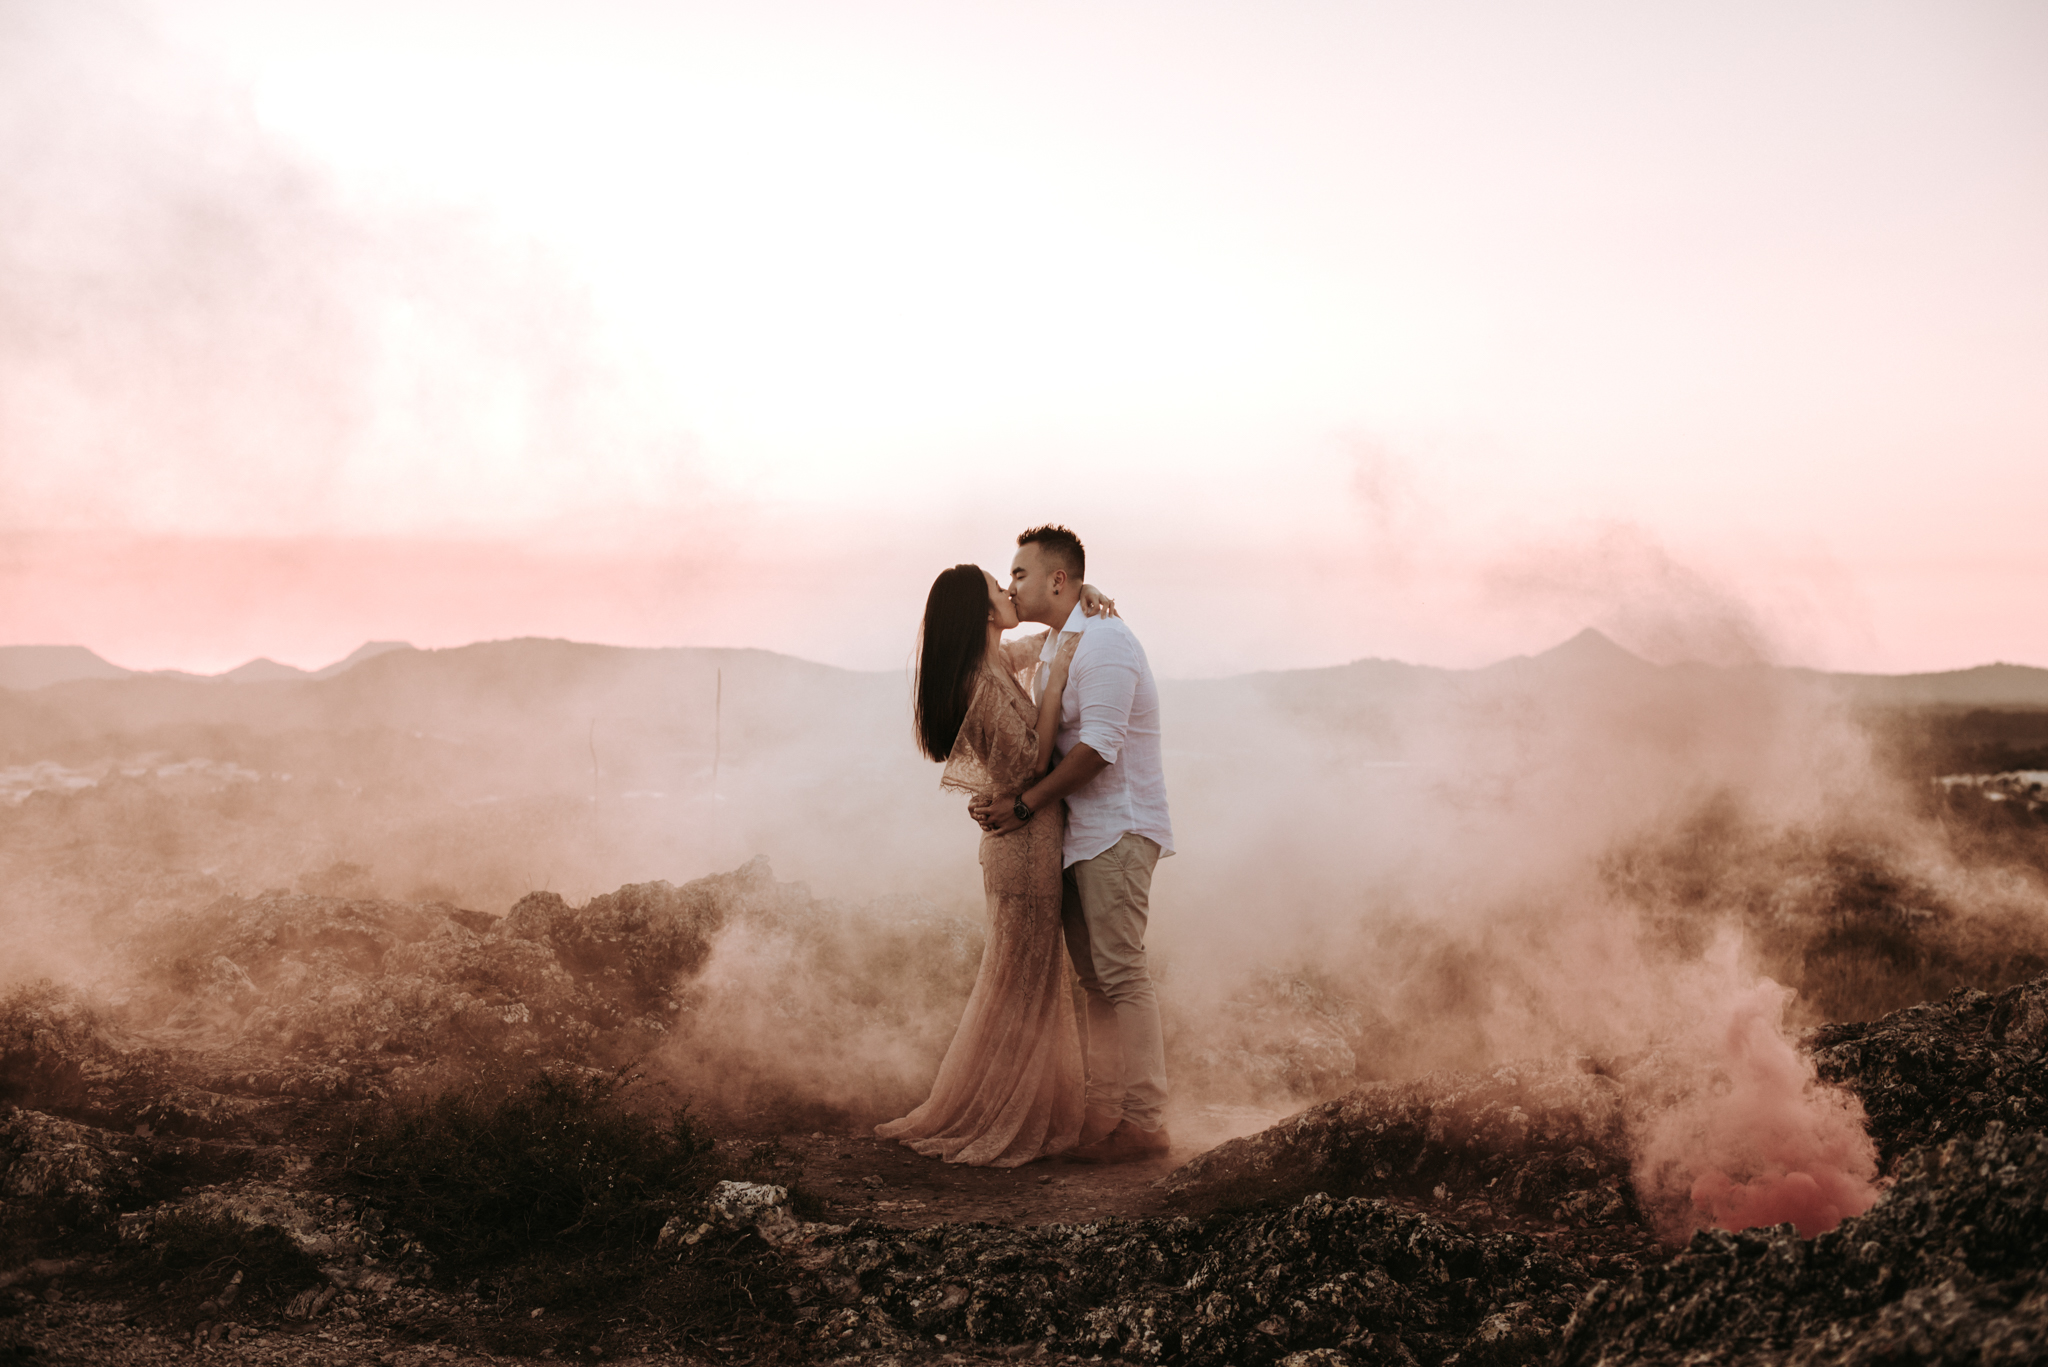 Red Smoke + Mountain Sunset - The smoke delivered from red smoke bombs turns out to look quite pink and it's the perfect shade to enhance the beauty of a peachy sunset. We ran back and forth behind our couple, Viv & Dong, a few times to create a wall of smoke first and then placed the smoke bomb on a rock surface to emit additional thick smoke next to them without blocking the couple or the mountain range in the back. Exposed locations like this one work best if there is just a gentle breeze and no strong winds, so check the weather before you start climbing.